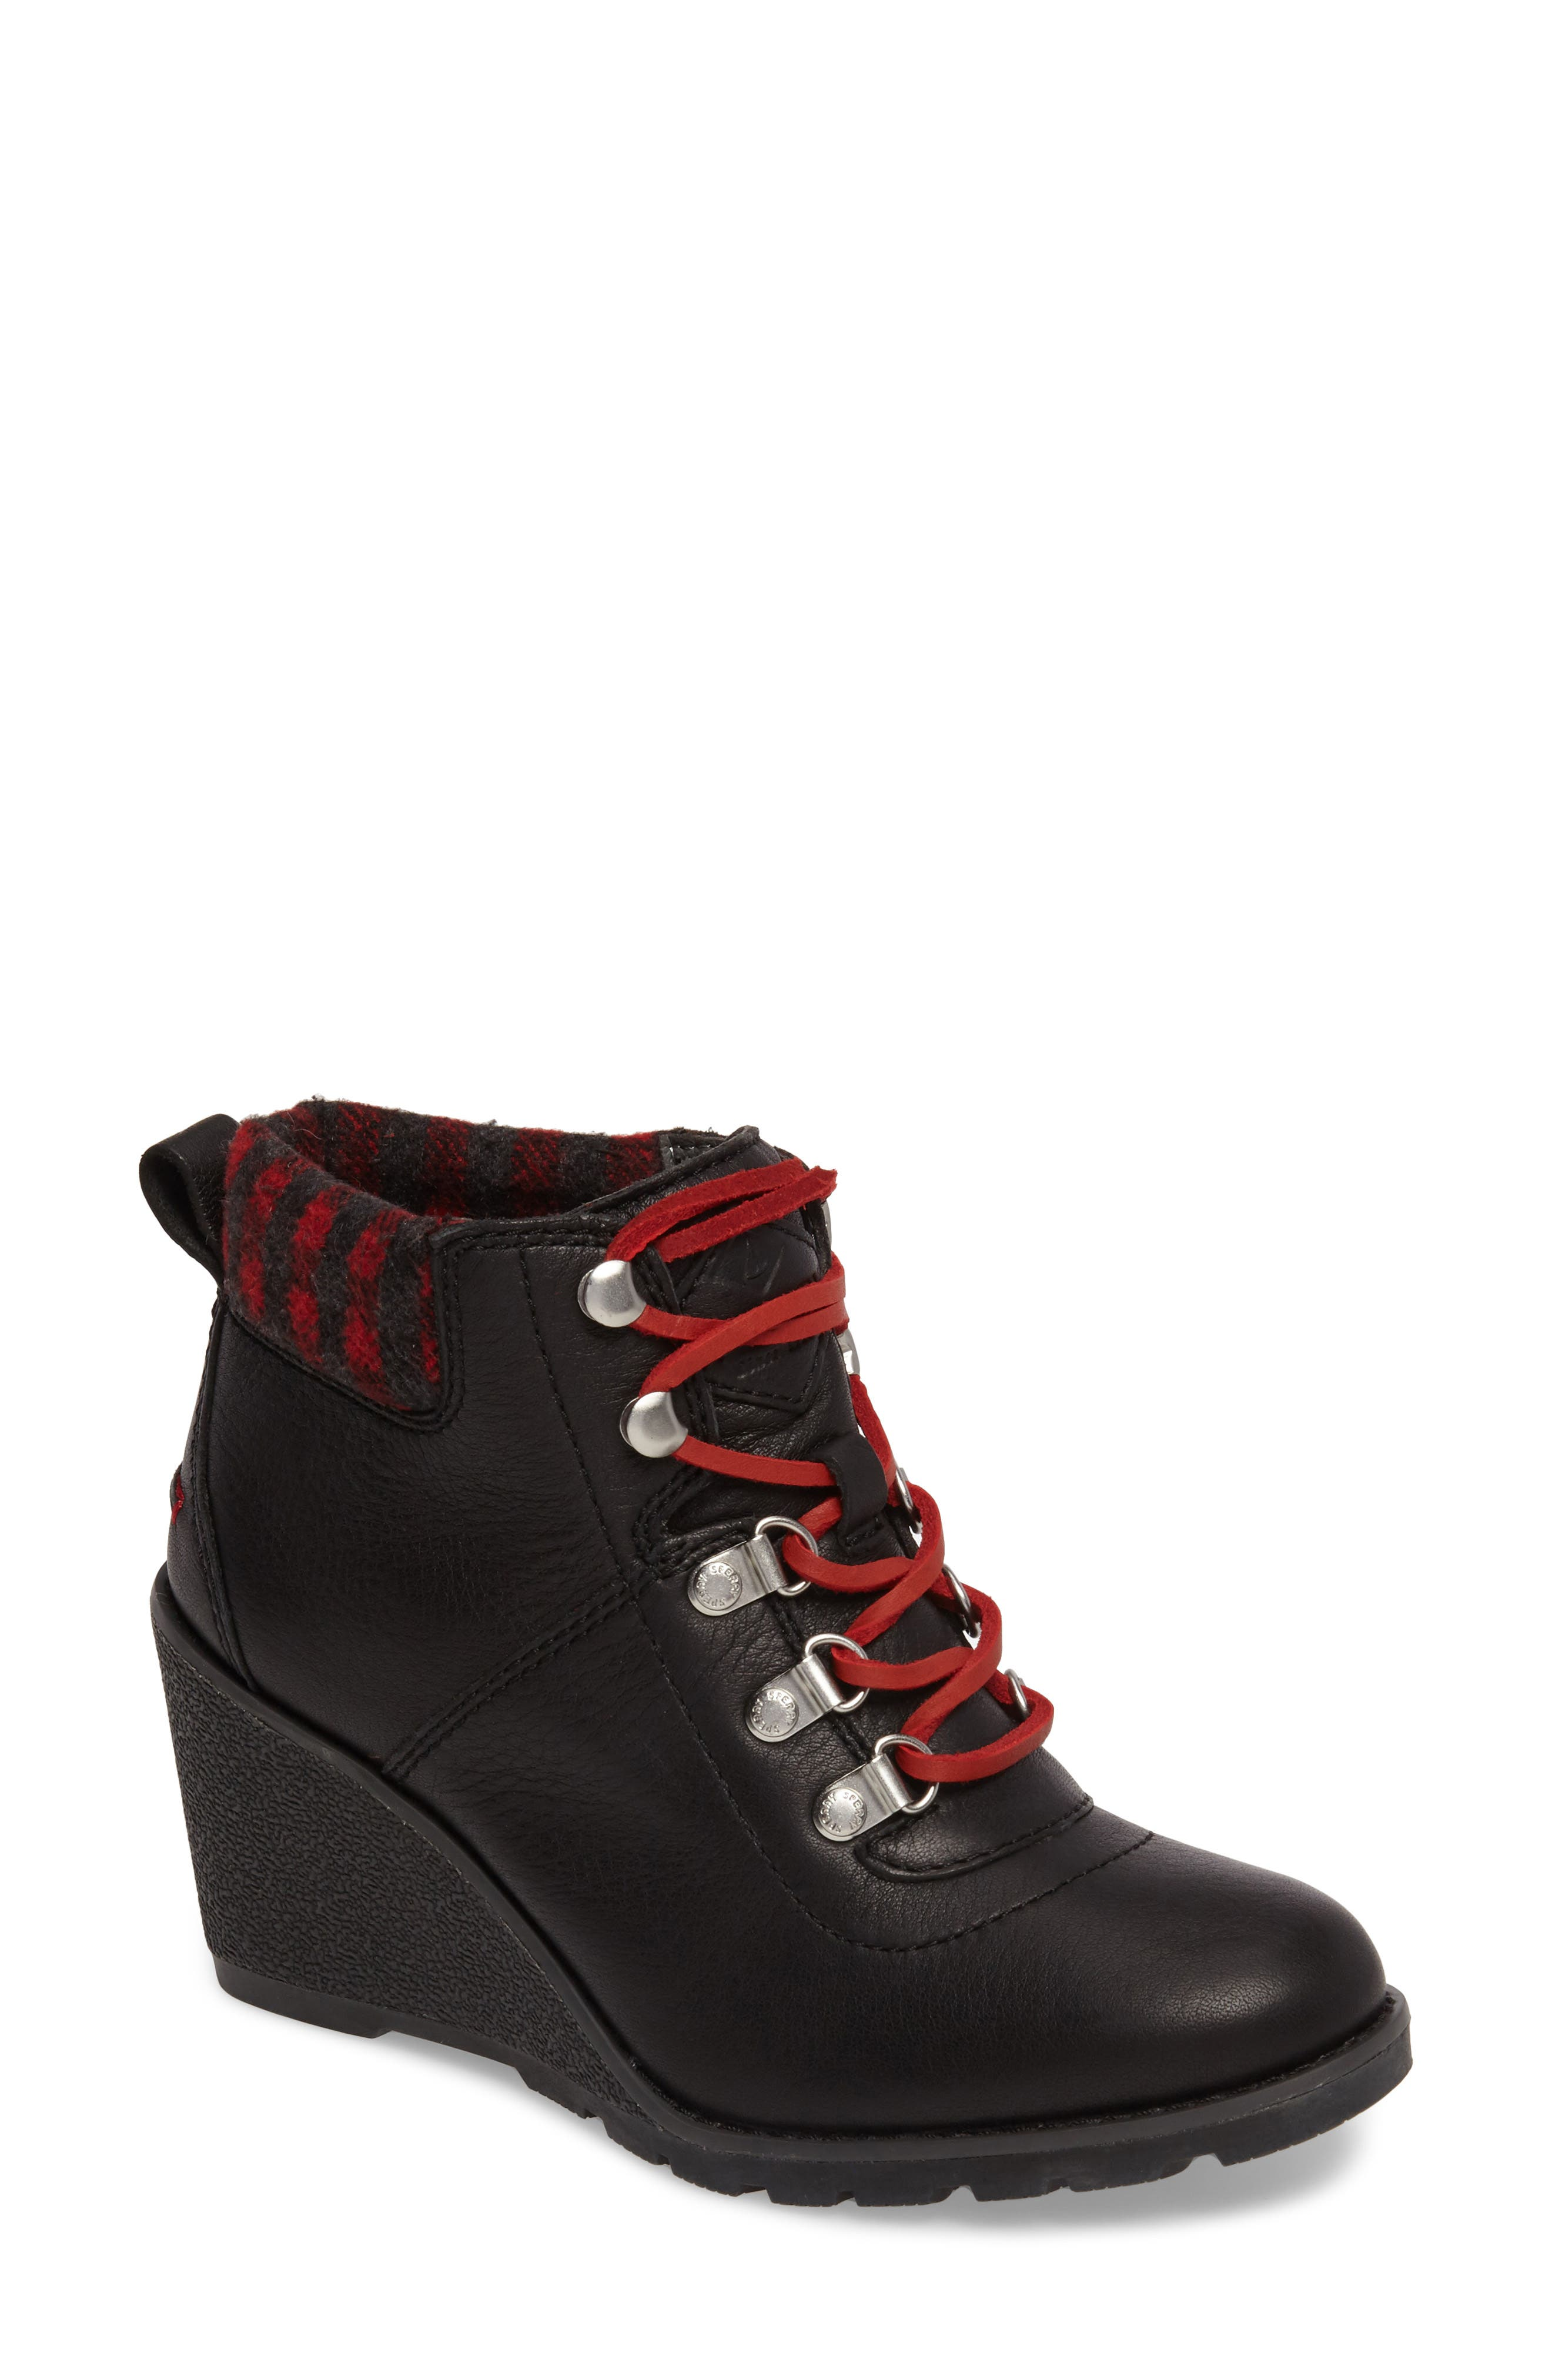 Top-Sider<sup>®</sup> Celeste Bliss Wedge Boot,                             Main thumbnail 1, color,                             001